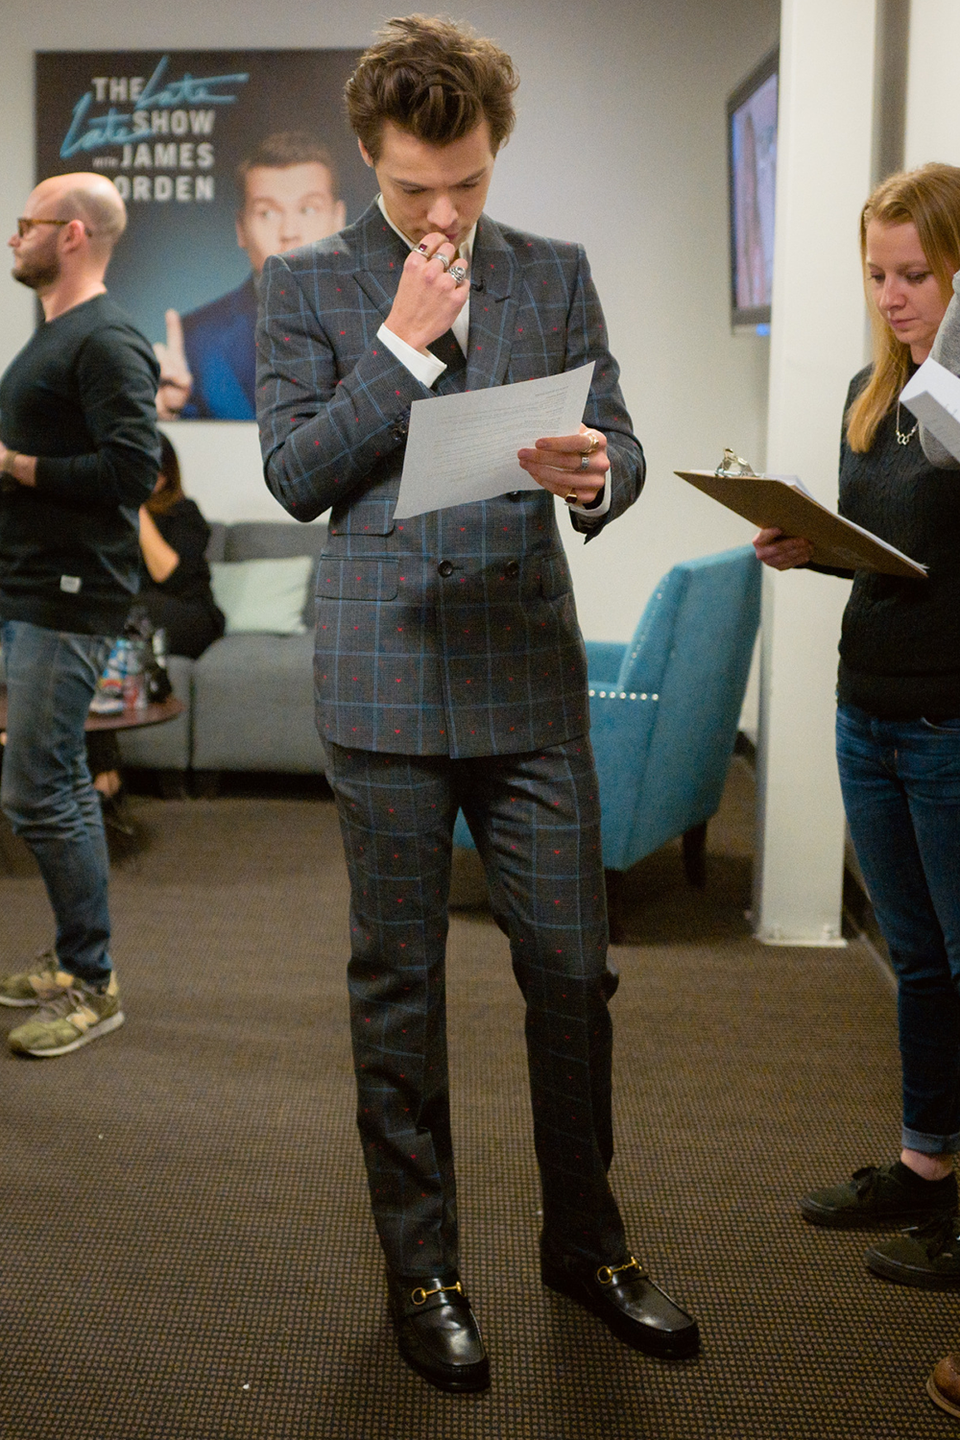 <p>When James Corden couldn't host <em>The Late Late Show </em>because his wife was giving birth, Harry stepped in and wore this Gucci suit, from the label's 2018 cruise collection. See? They're not always custom. Celebrities! They're just like us. Kind of. </p>